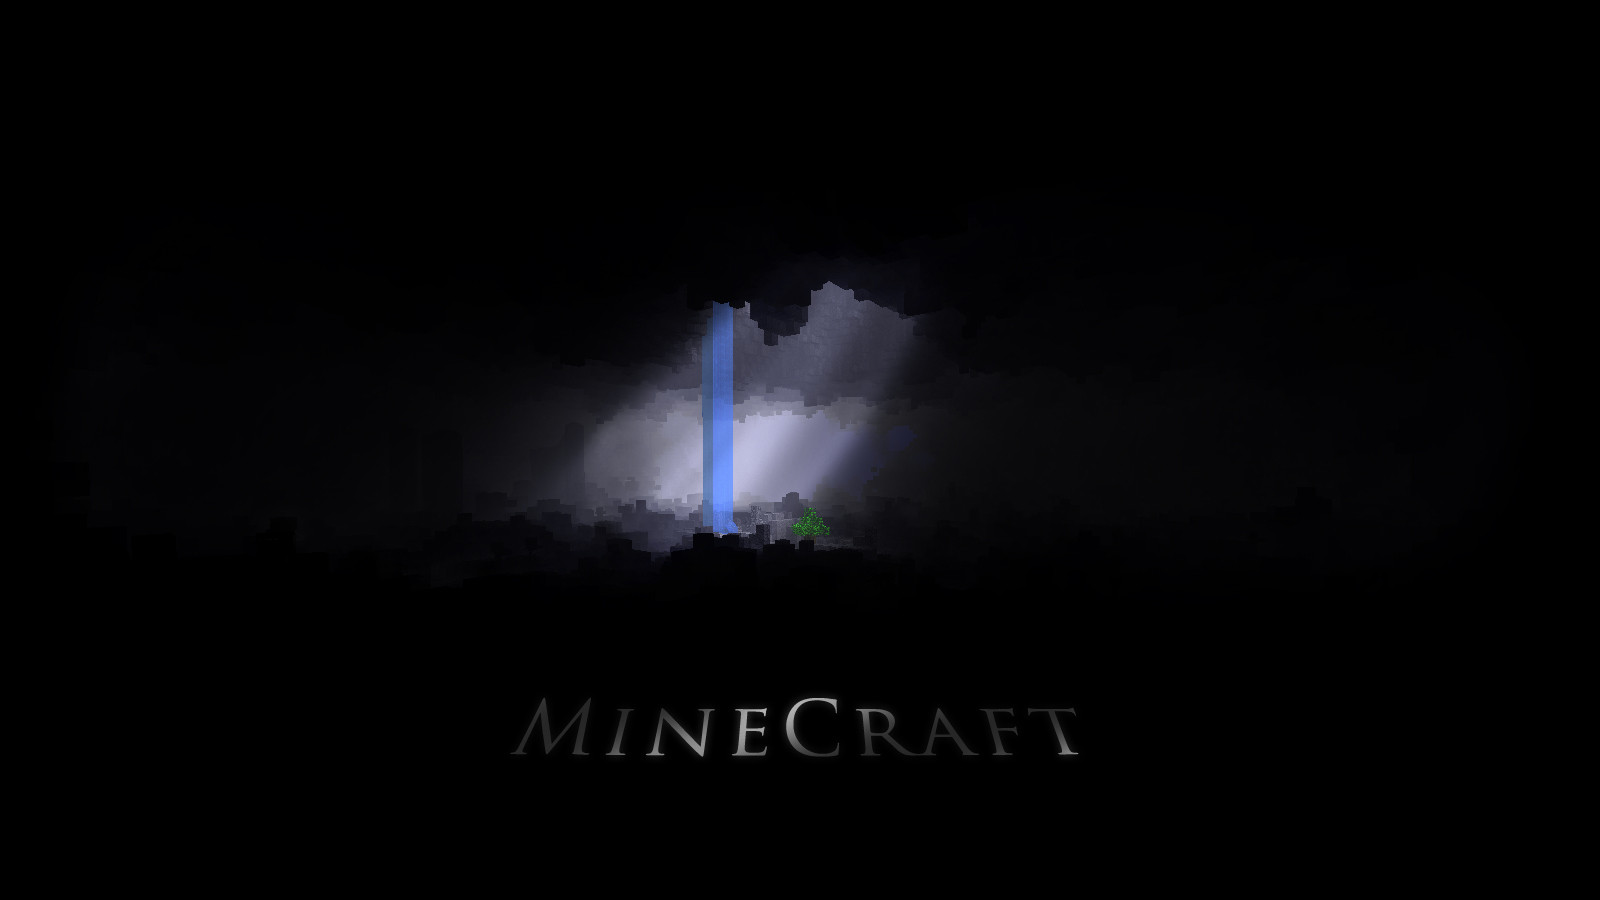 Minecraft Wallpaper Hd 1080p Enderman Bigking Keywords And Pictures